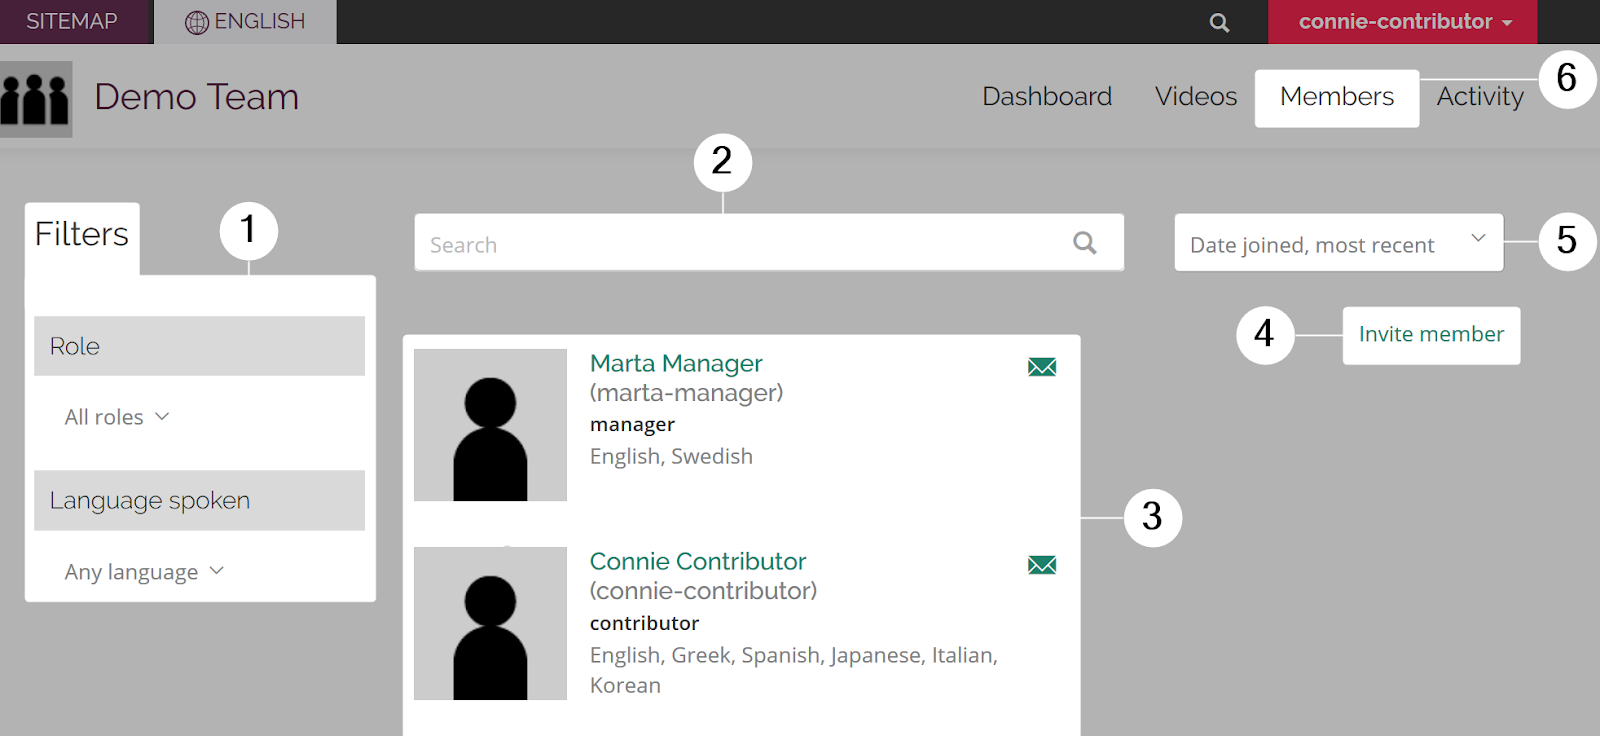 Member directory page of a Collaboration team viewed by a manager with six sections highlighted and numbered from left to right